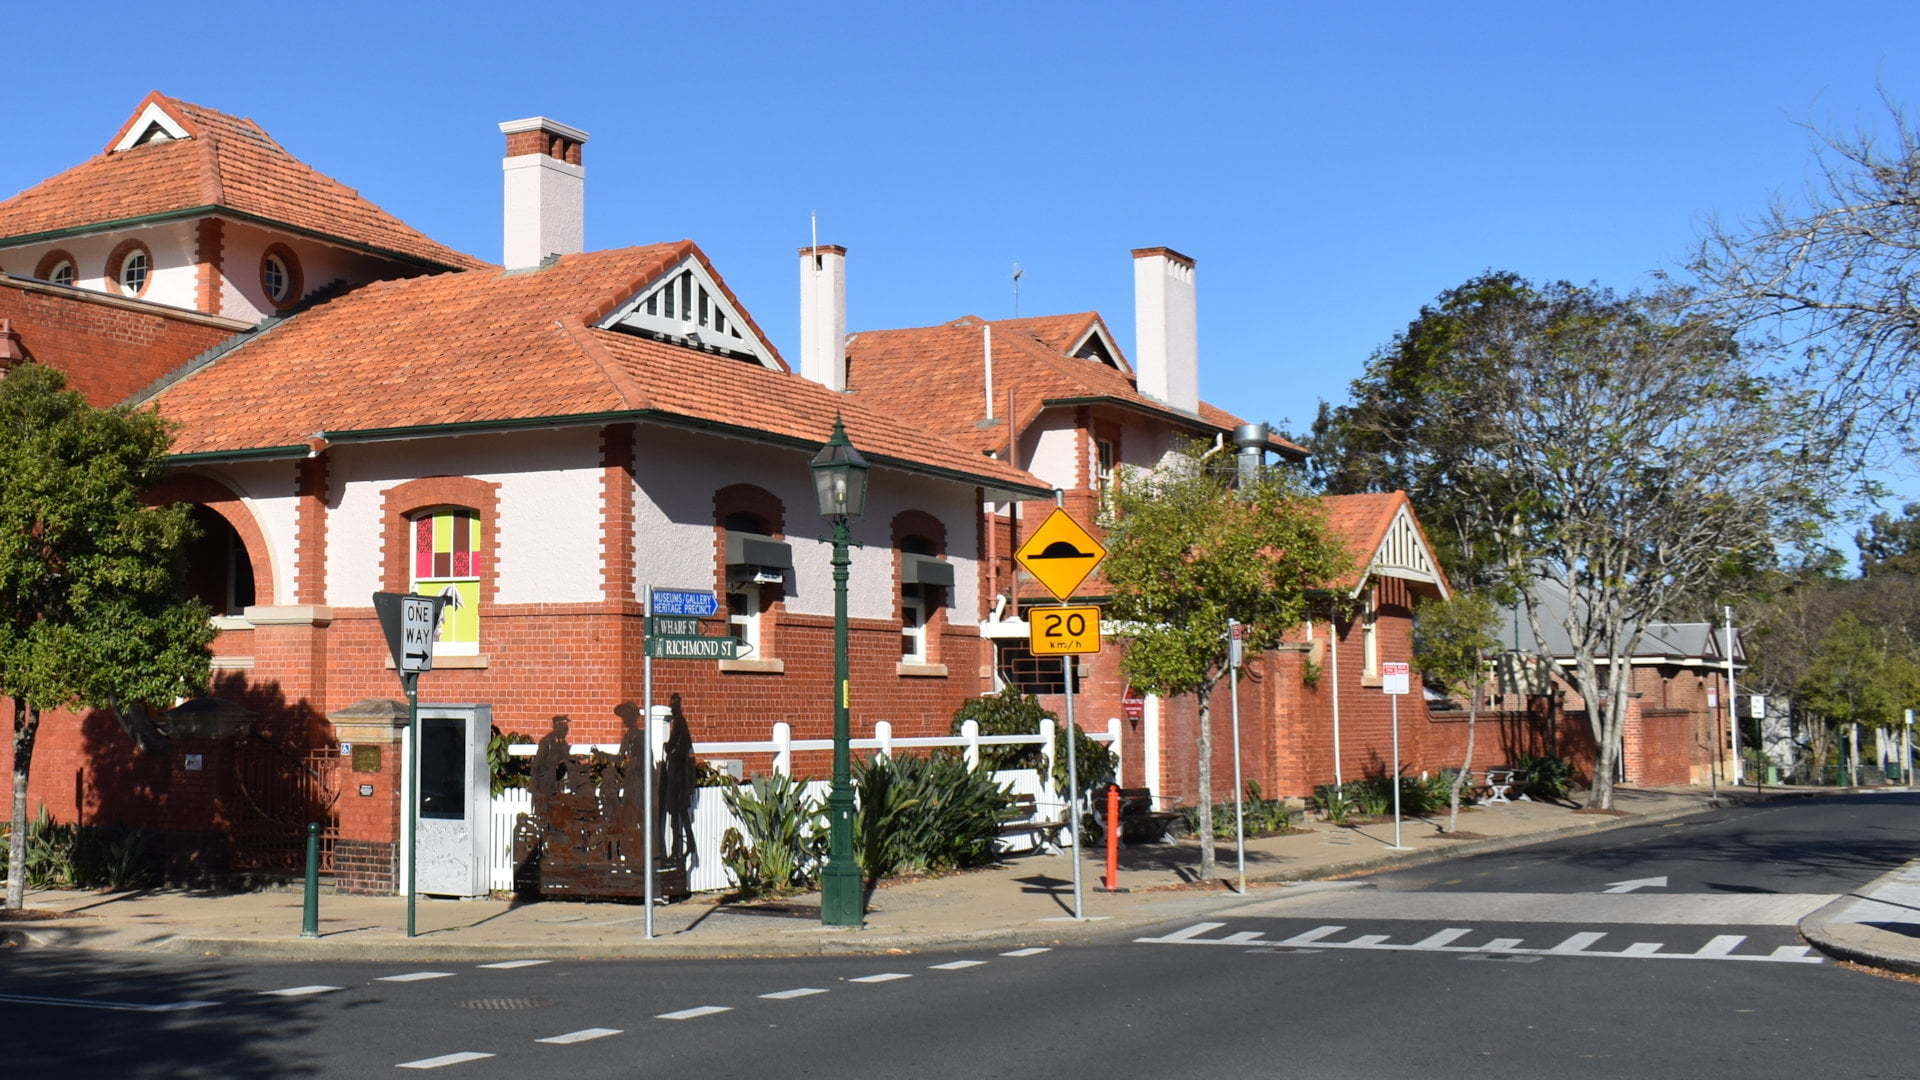 Historical Customs House building in Maryborough, in the Maryborough Heritage Gateway